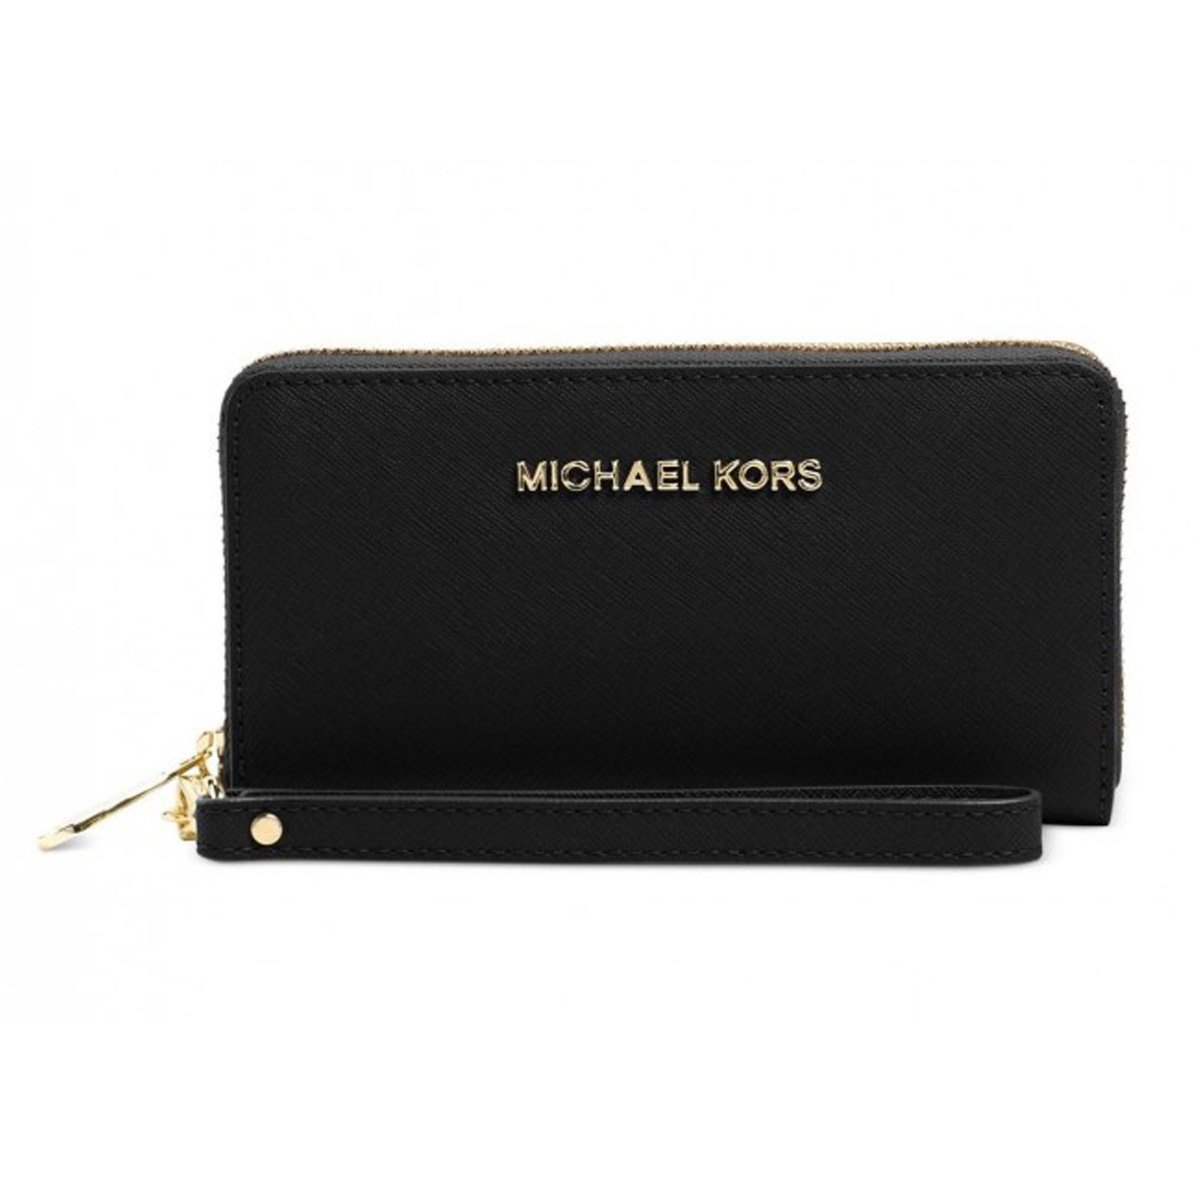 Pochette da polso Michael Kors Jet Set Travel in pelle saffiano nero: Amazon.es: Equipaje